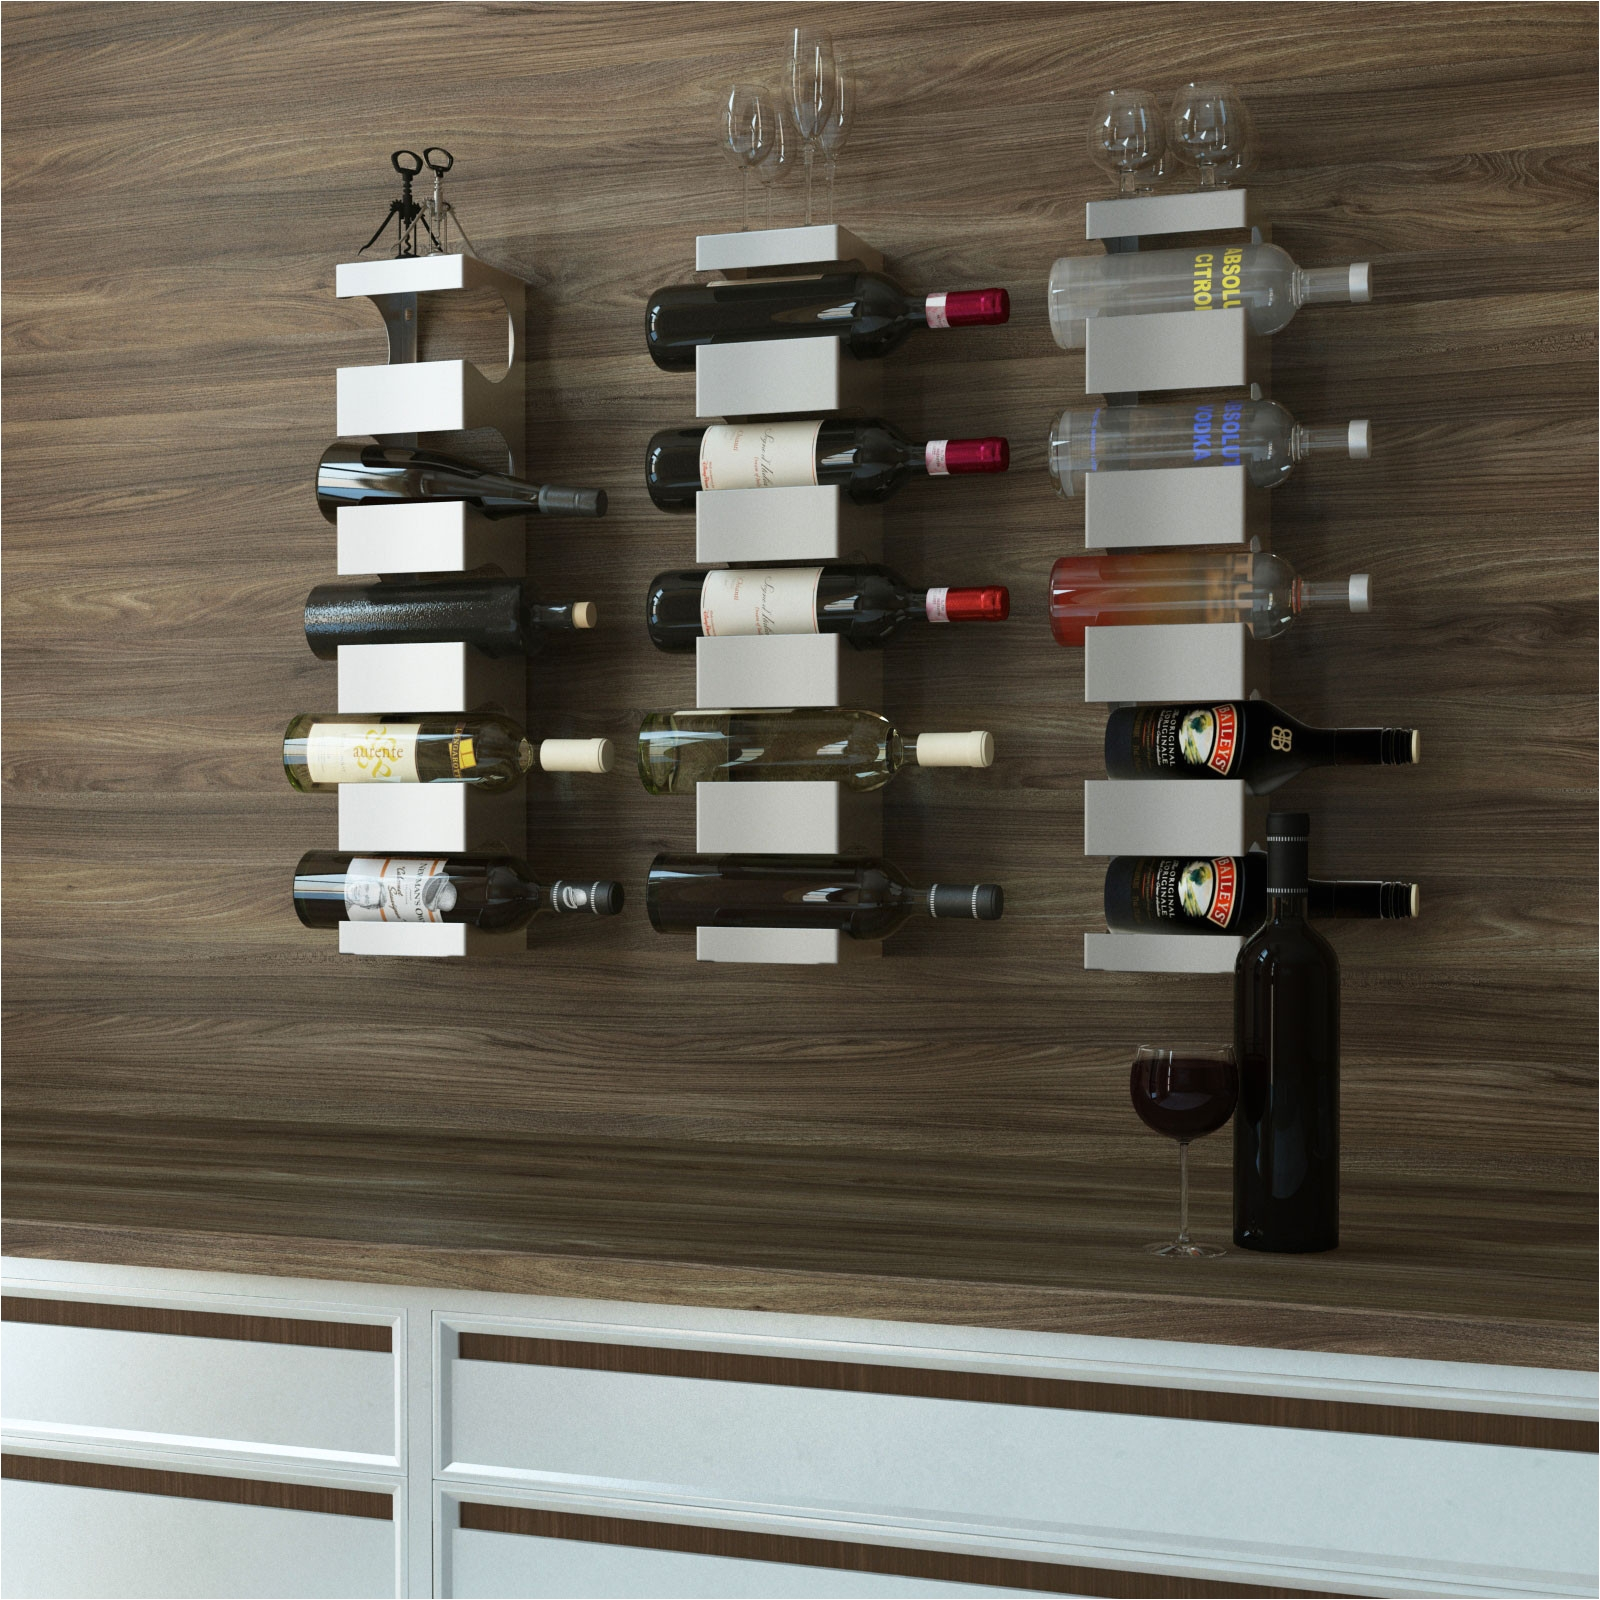 wine storage cabinet ikea home designs stainless steel shelves for fresh lovely pe s5h sink